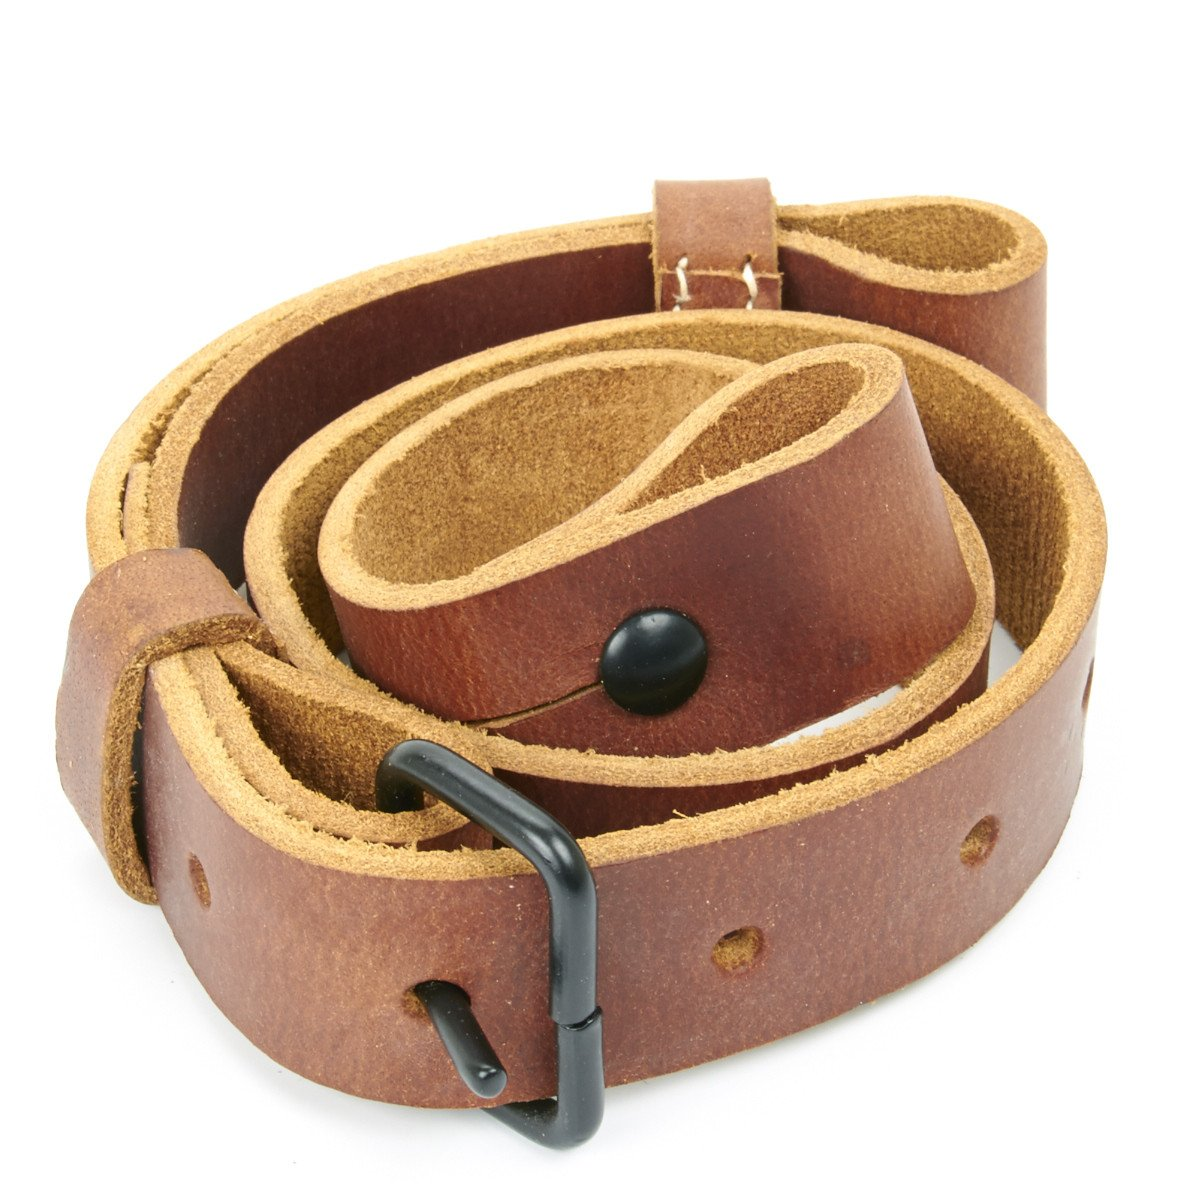 Japanese WW2 Arisaka Type 99 Leather Rifle Sling – International